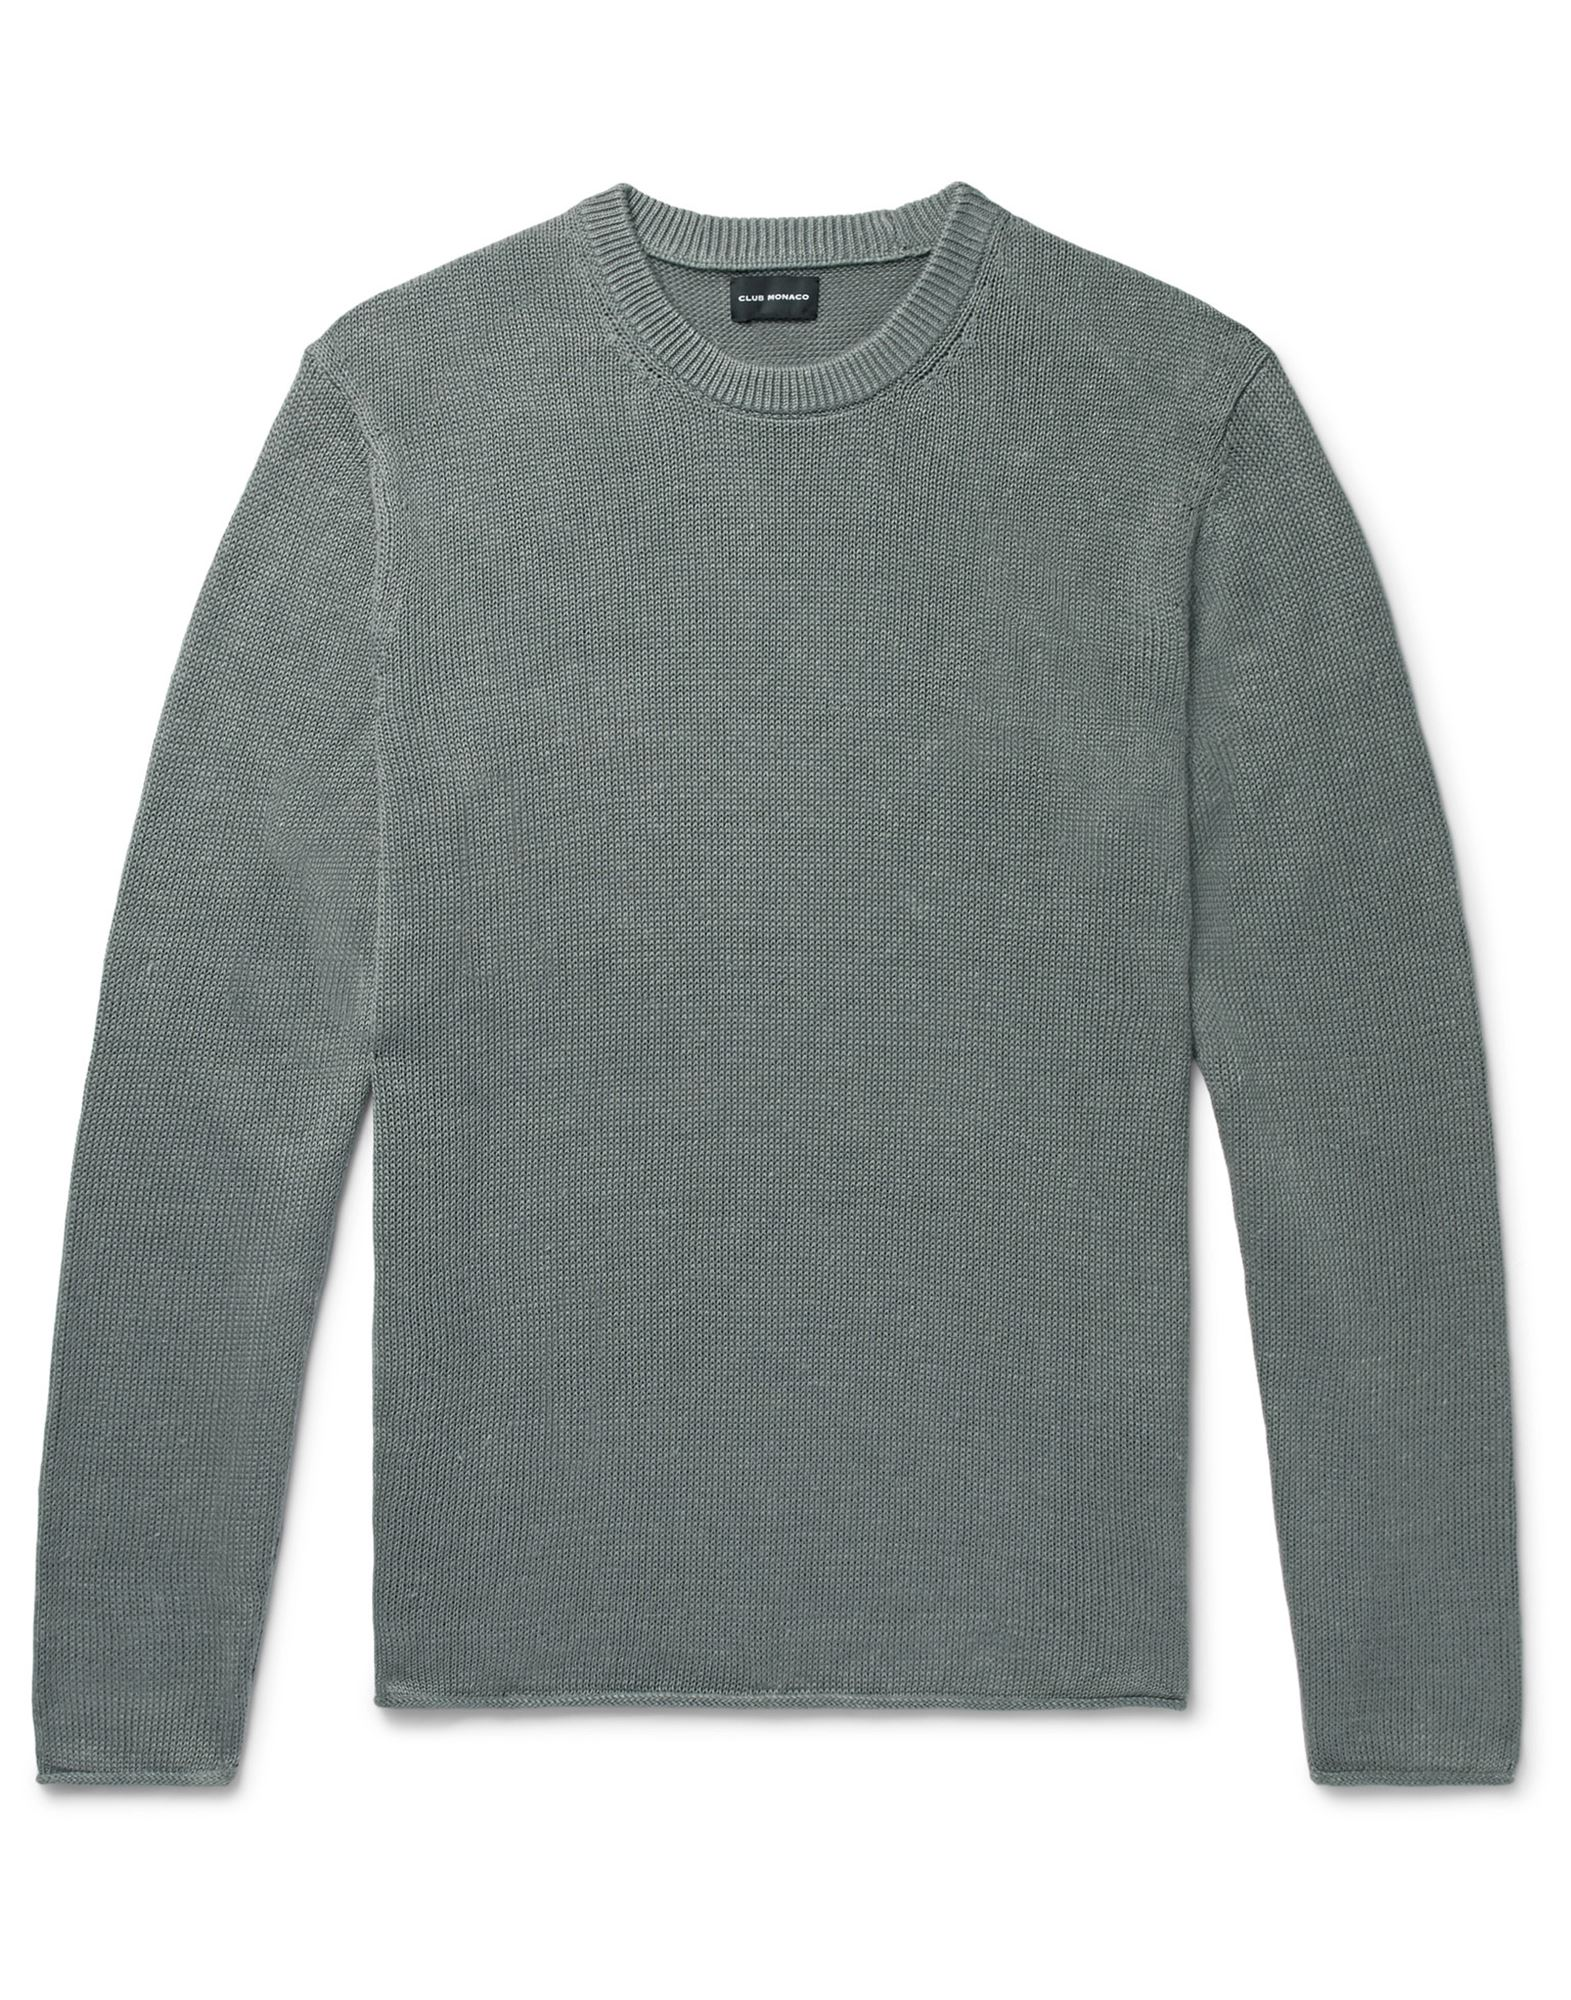 CLUB MONACO Sweaters. knitted, no appliqués, lightweight knit, round collar, solid color, long sleeves, no pockets. 59% Cotton, 41% Linen